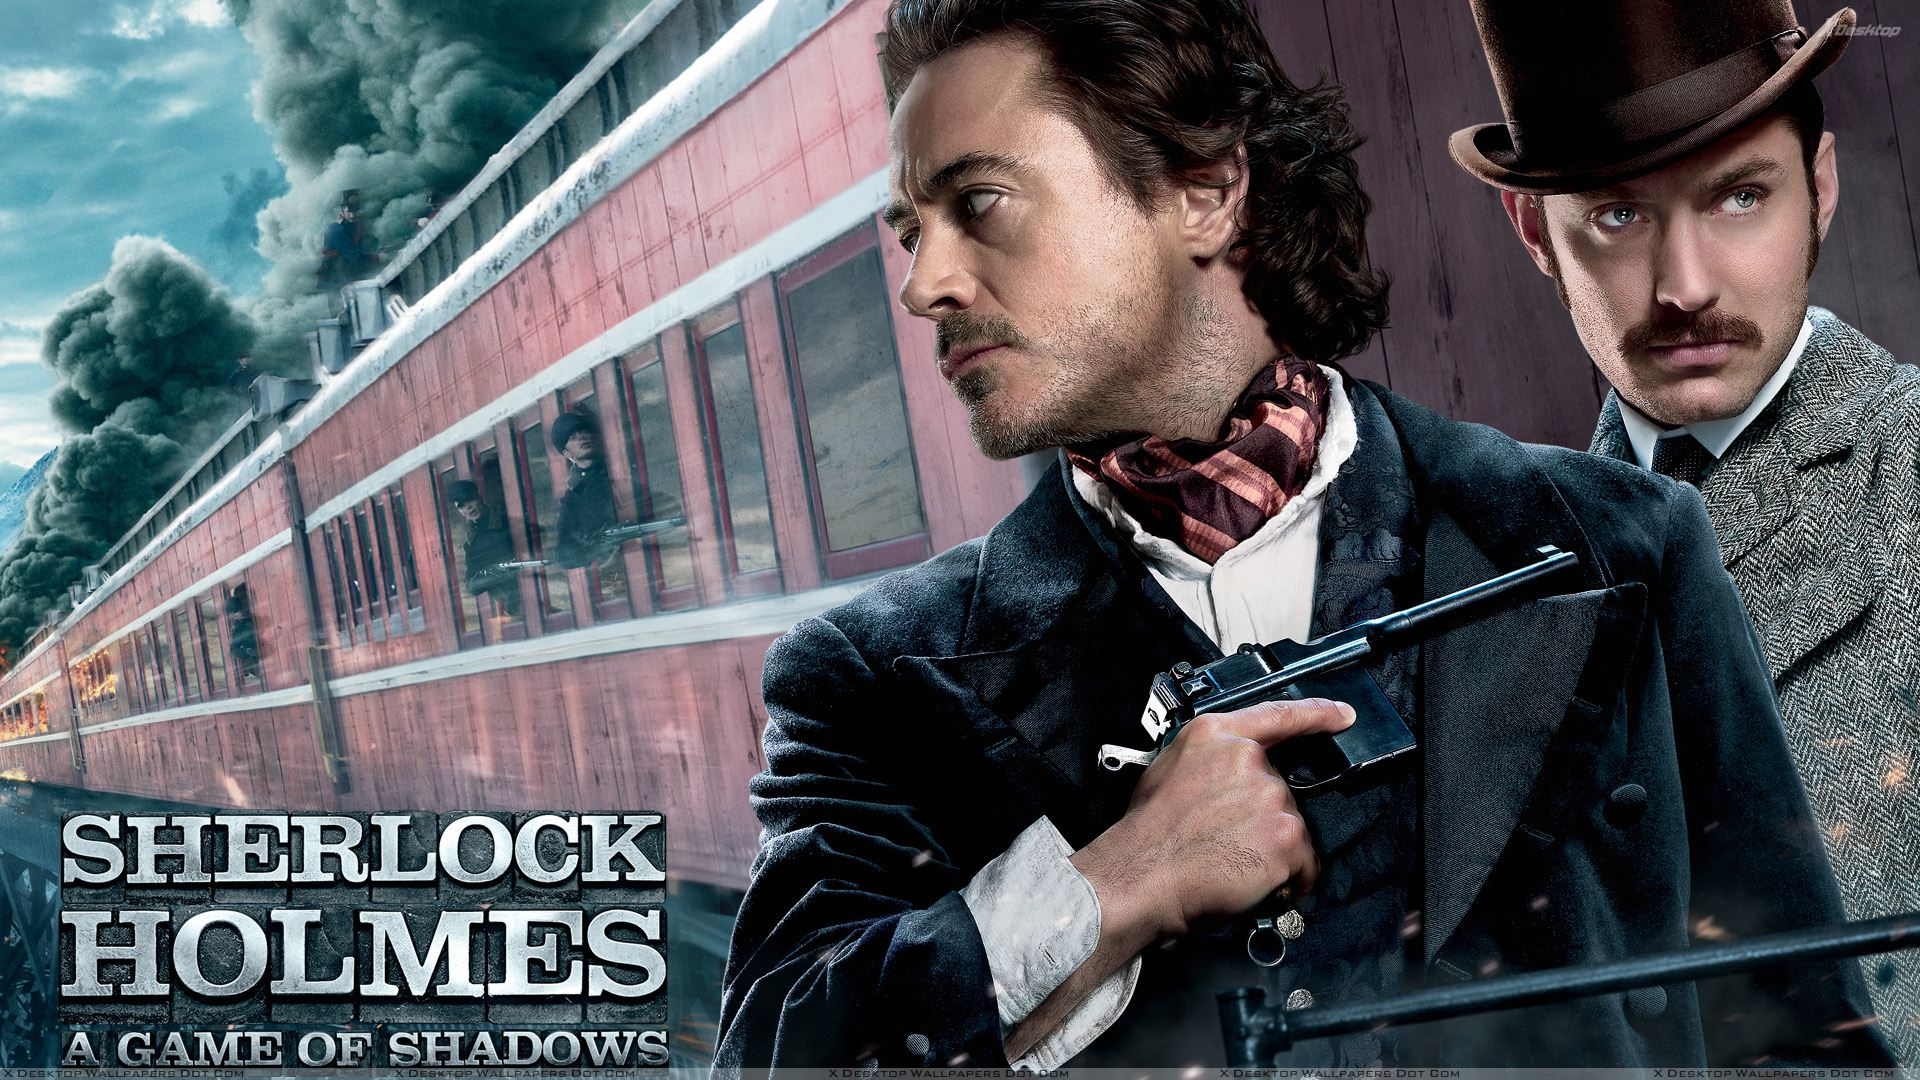 Sherlock Holmes- A Game of Shadows - Outside The Train